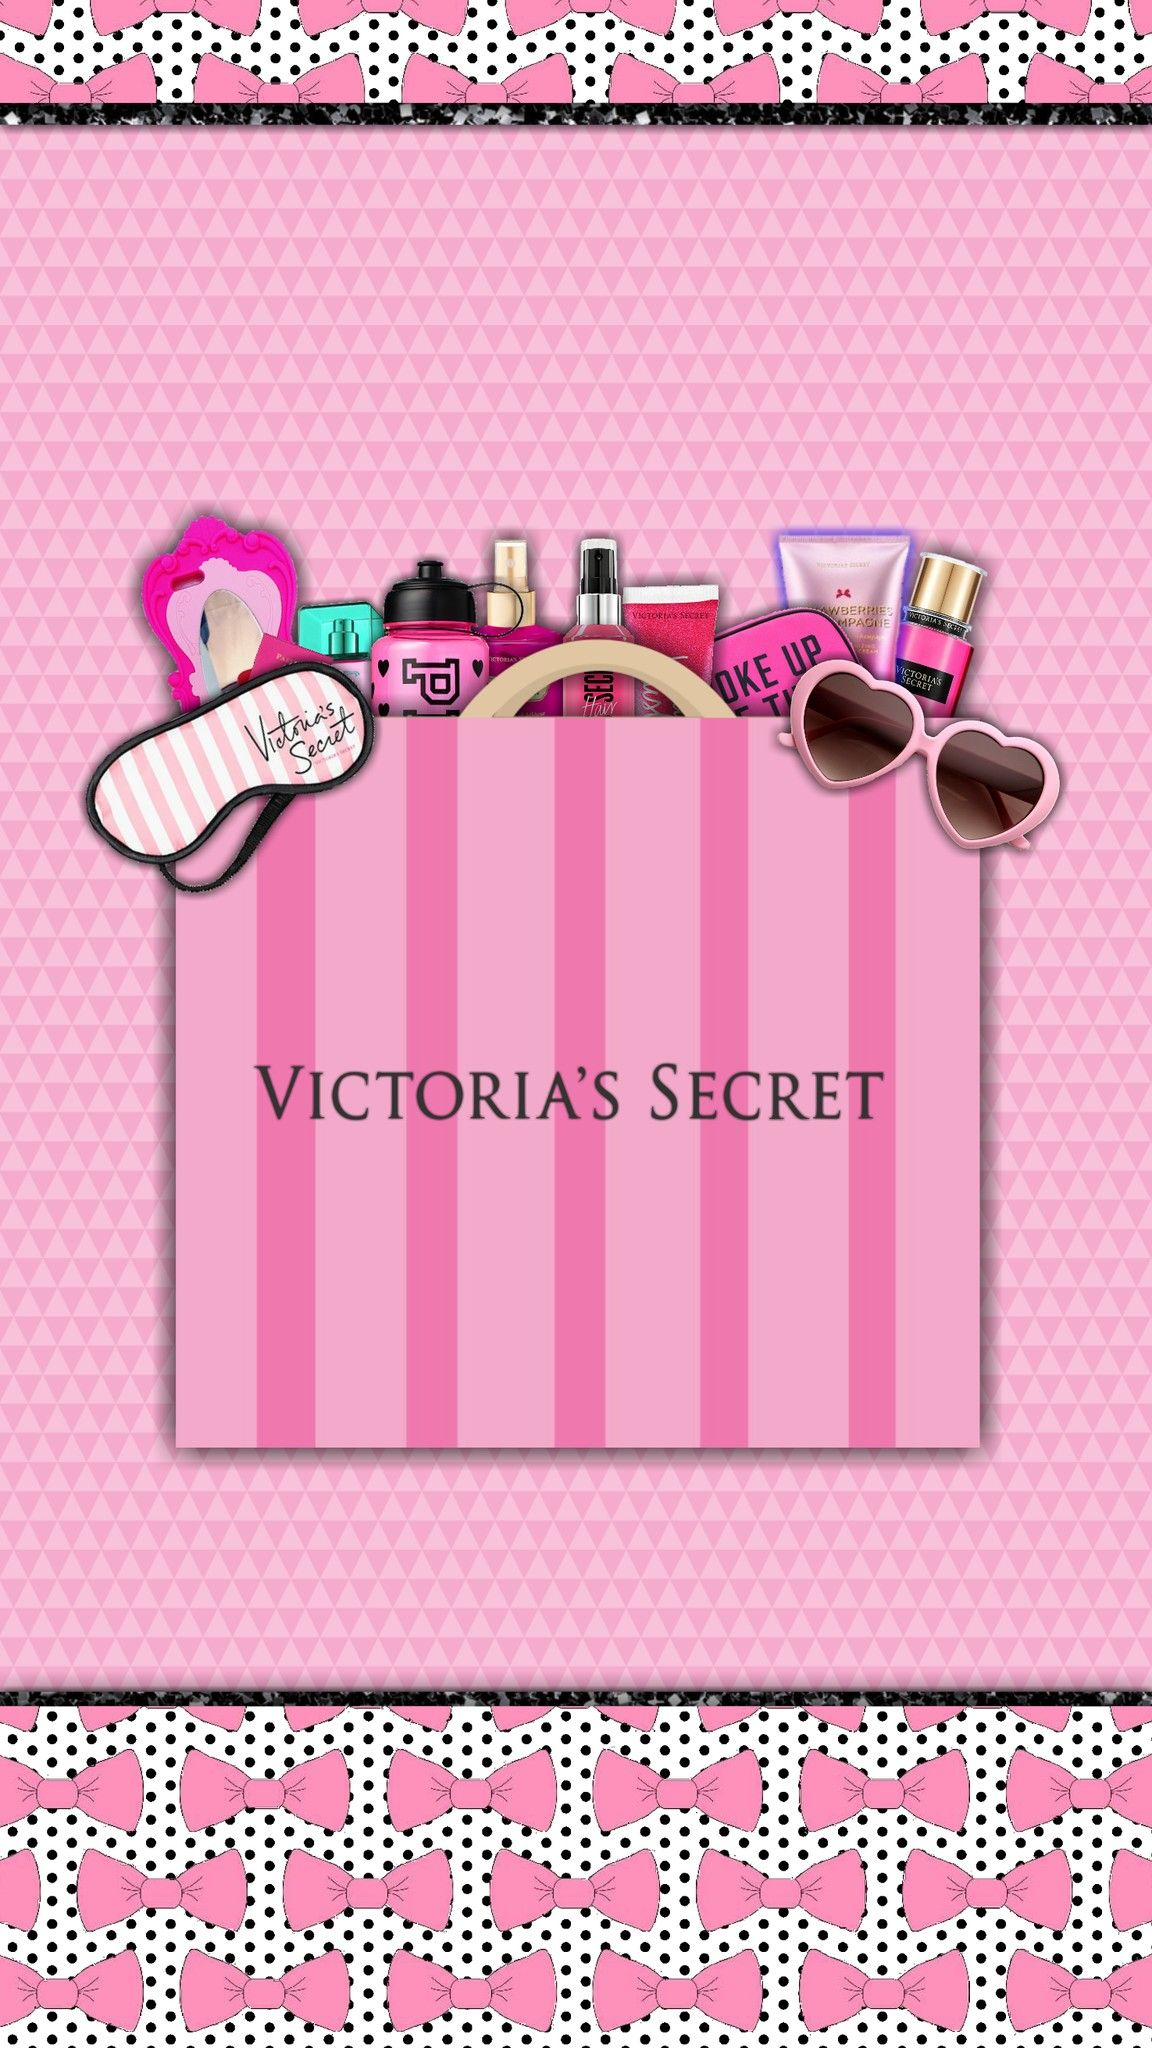 17 victoria secret fondos